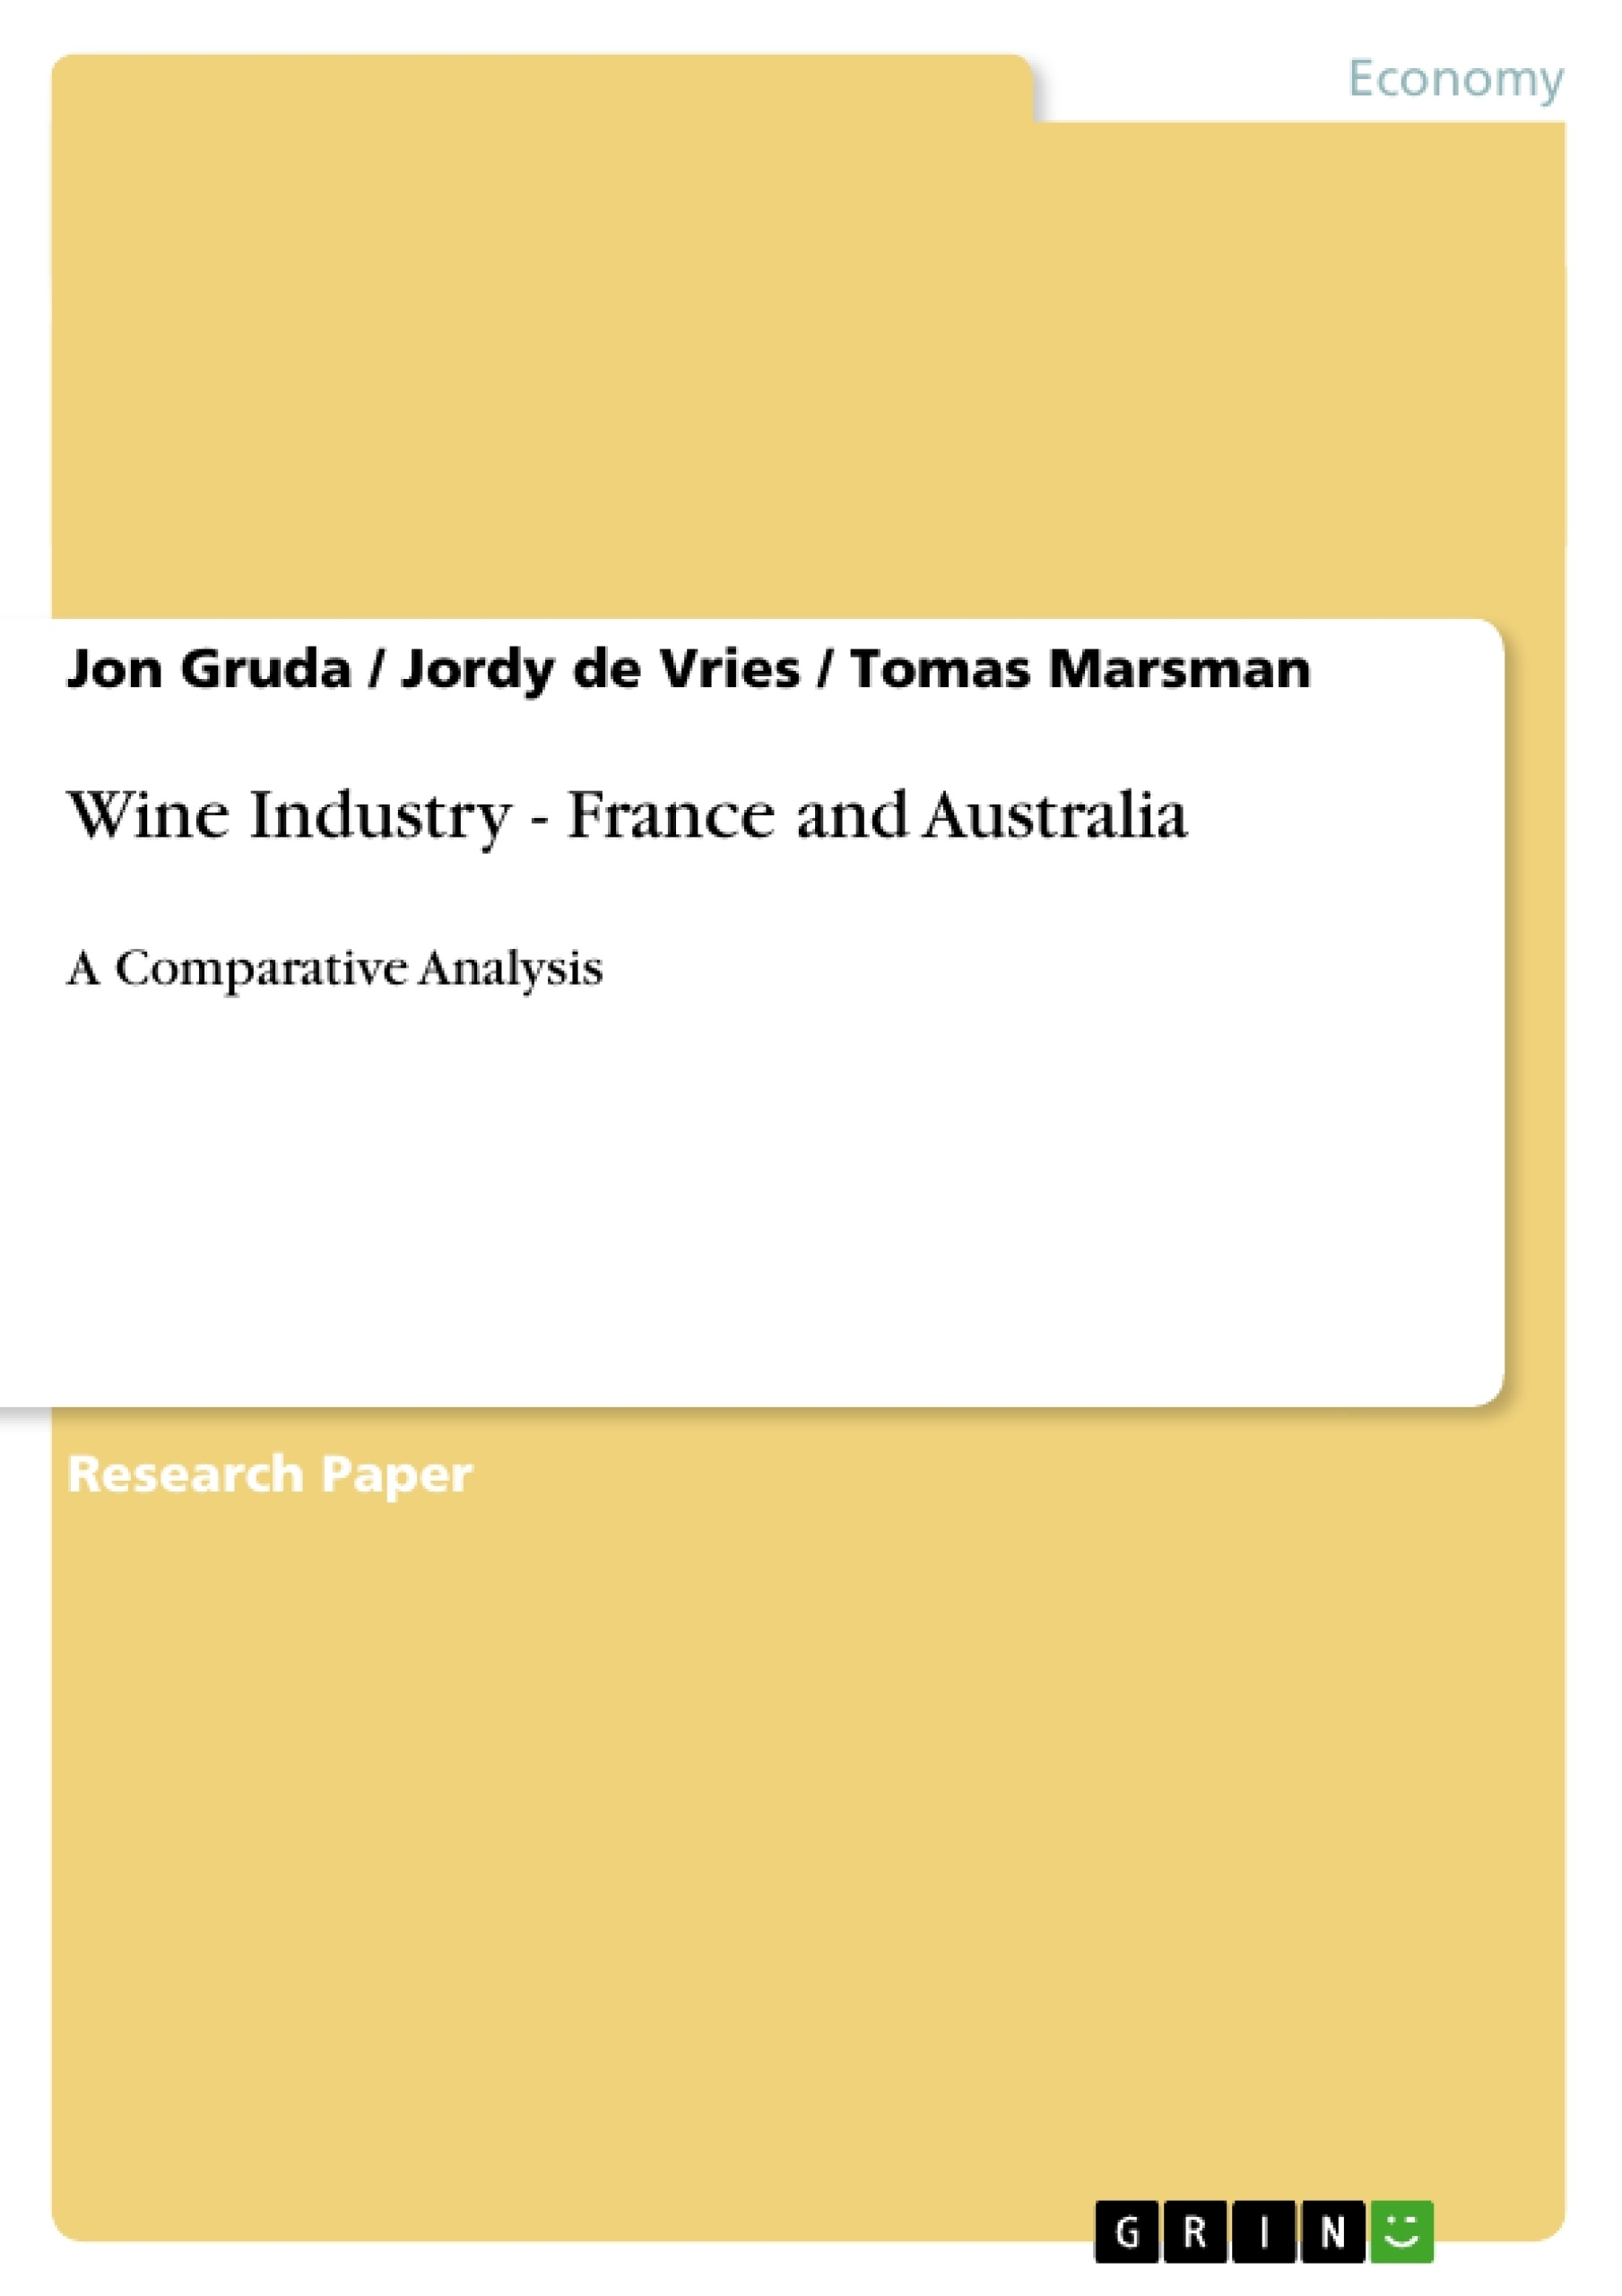 analysis of the wine industry essay